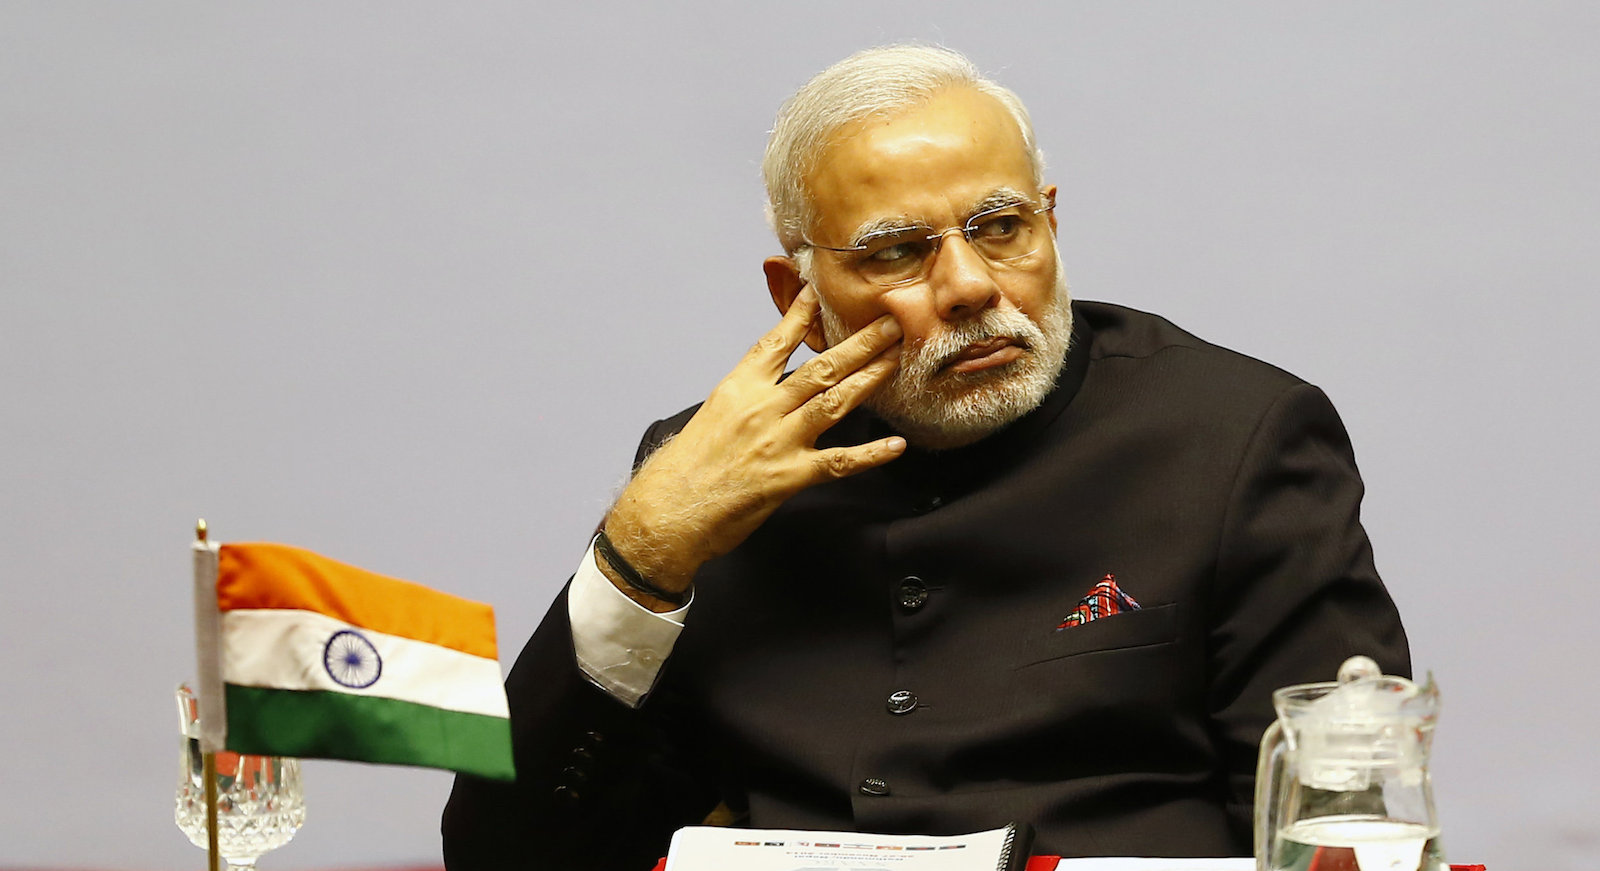 Indian Prime Minister Narendra Modi attends the 18th summit of the South Asian Association for Regional Cooperation (SAARC) in Katmandu, Nepal, Wednesday, Nov. 26, 2014. The South Asian Association for Regional Cooperation summit, the first since 2011, is meant as a forum to discuss regional issues, but is usually dominated by the rivalry between Pakistan and India. (AP Photo/Narendra Shrestha, Pool)